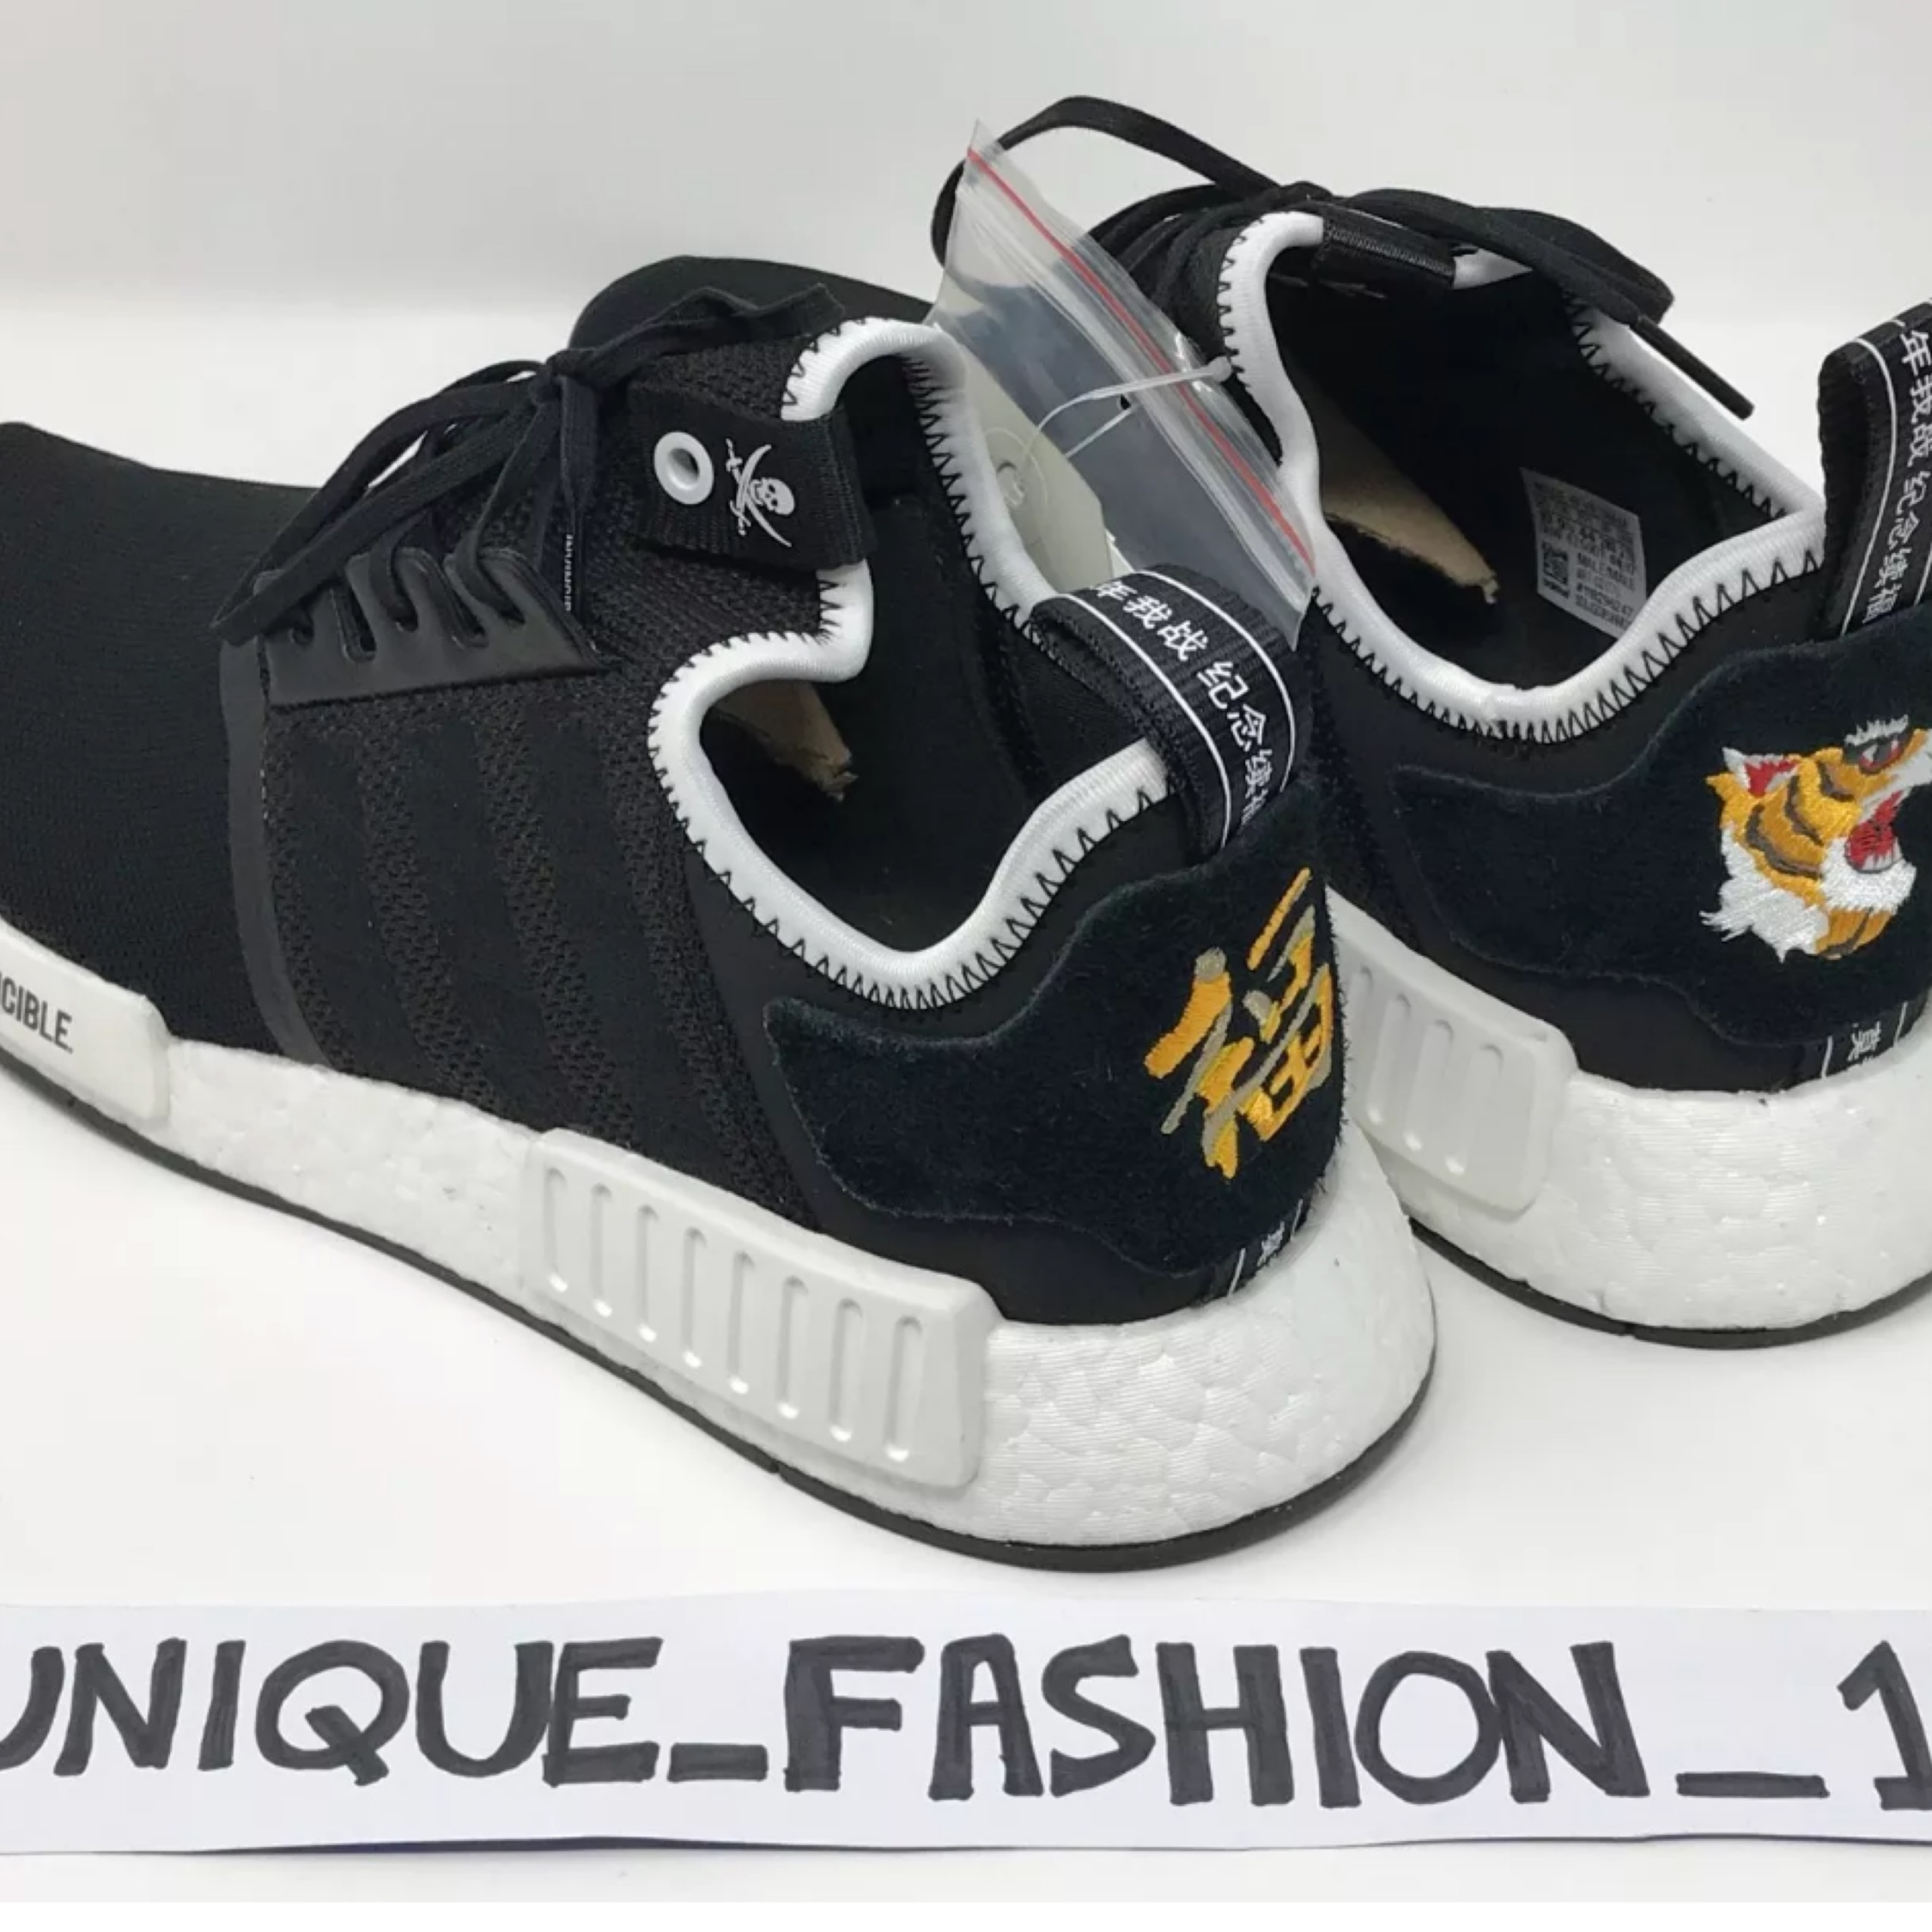 purchase cheap 6e6aa b9d7d Adidas Consortium Neighbourhood X Invincible Nmd